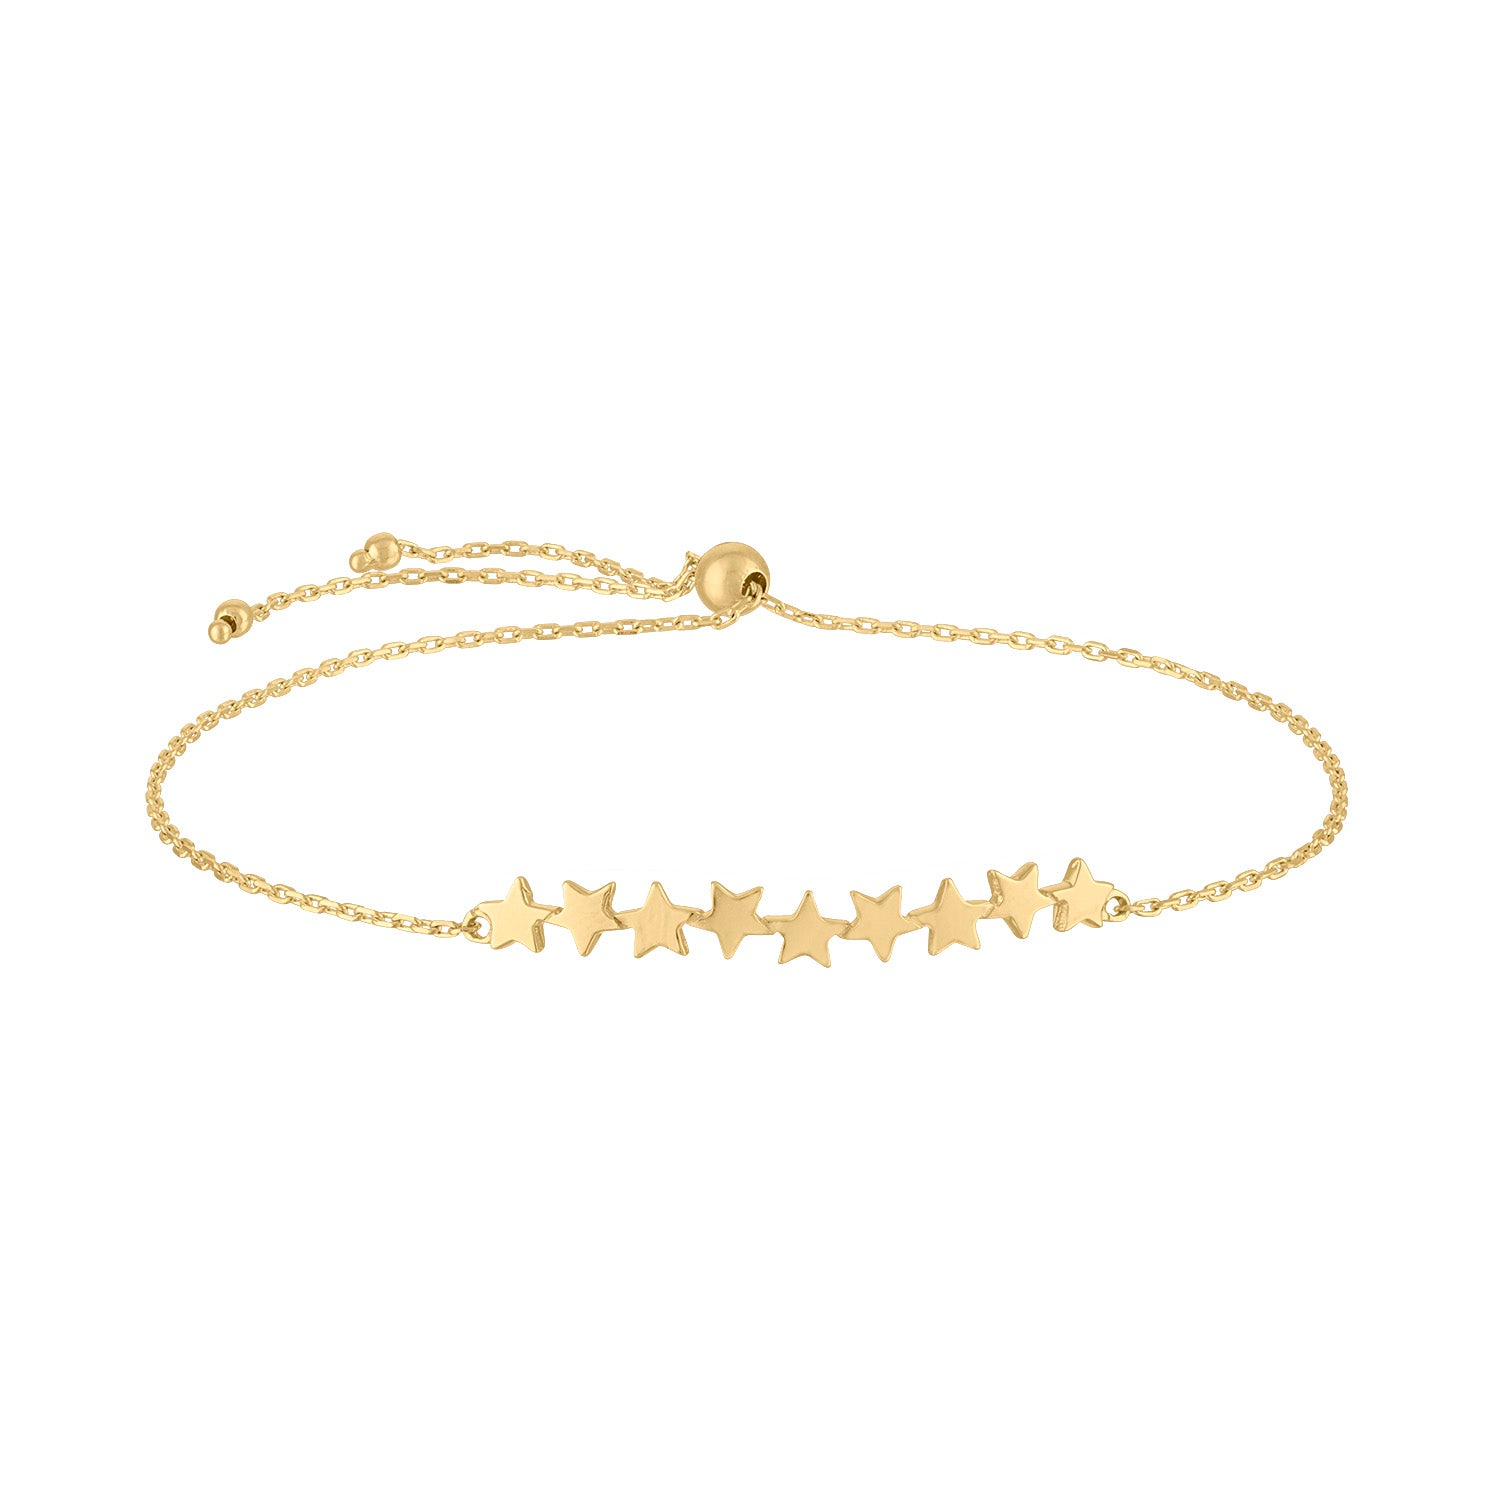 14KT GOLD CONNECTED STARS BOLO BRACELET